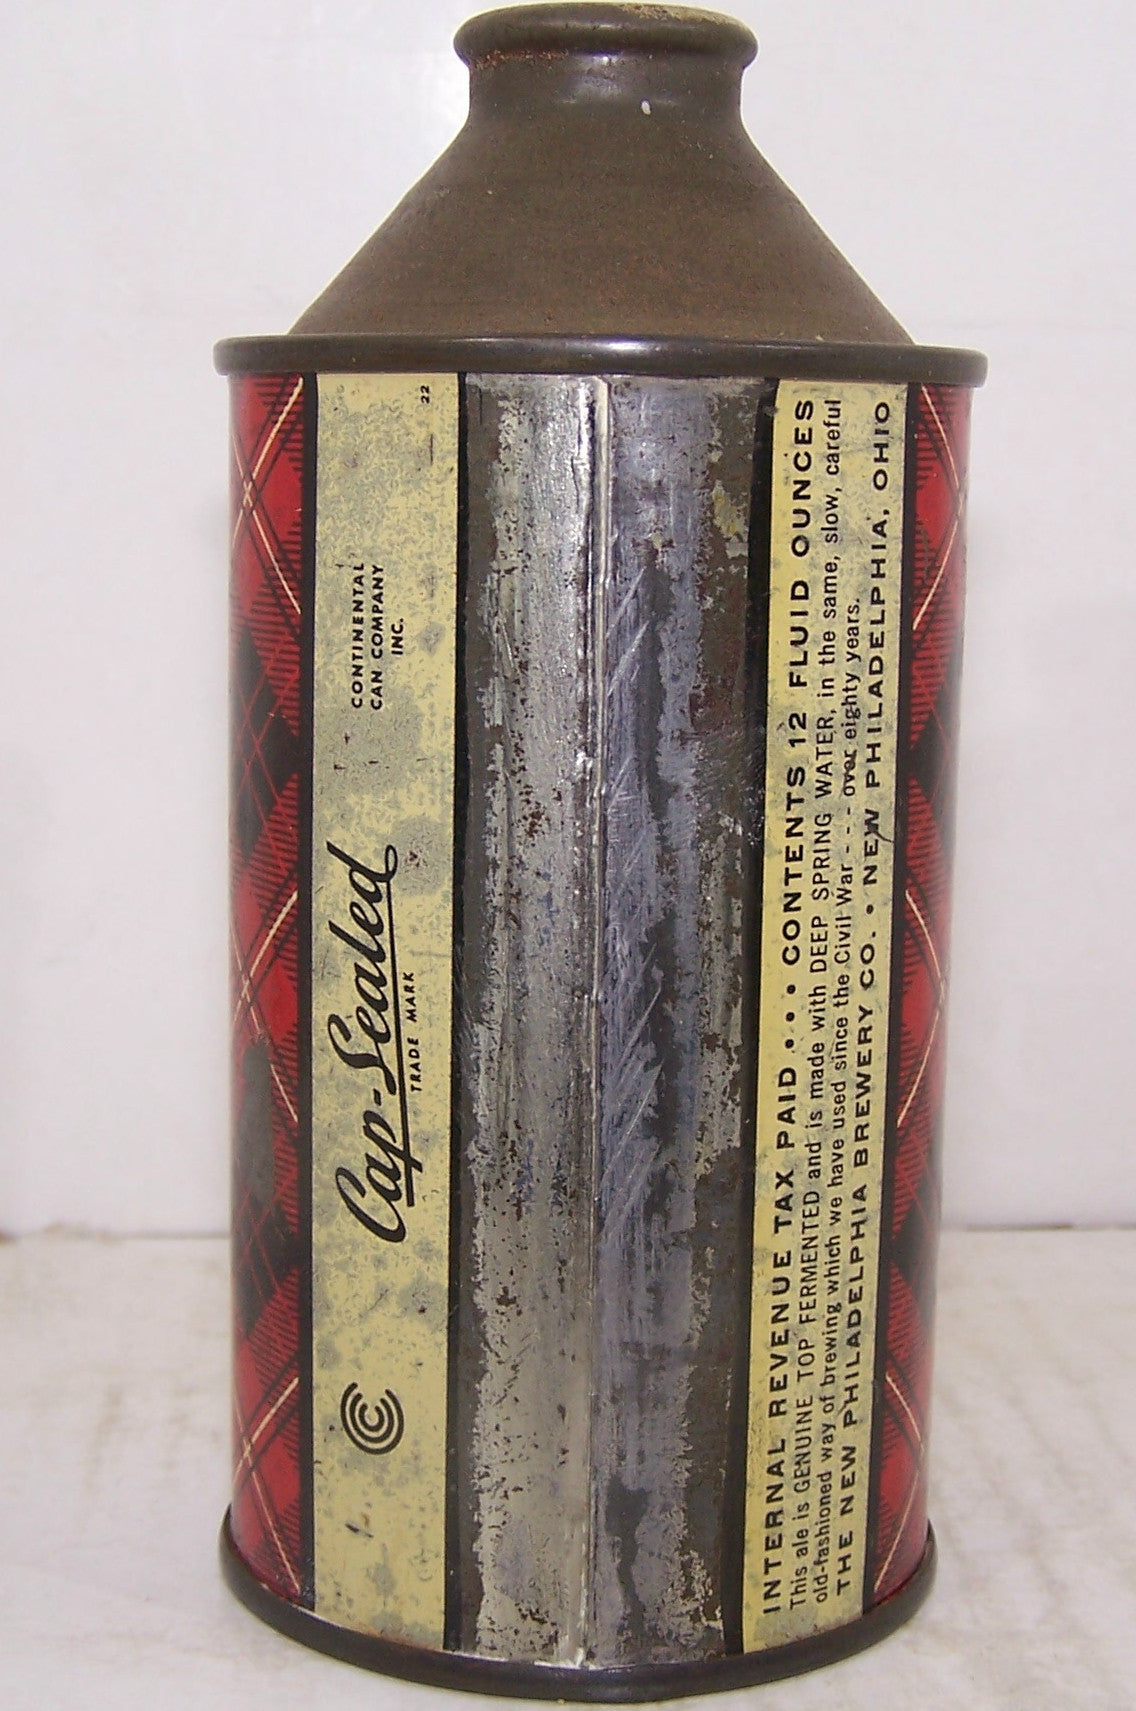 Scotch Highland Brand Genuine Ale, USBC 185-8, Grade 1-/2+ Sold on 2/27/15